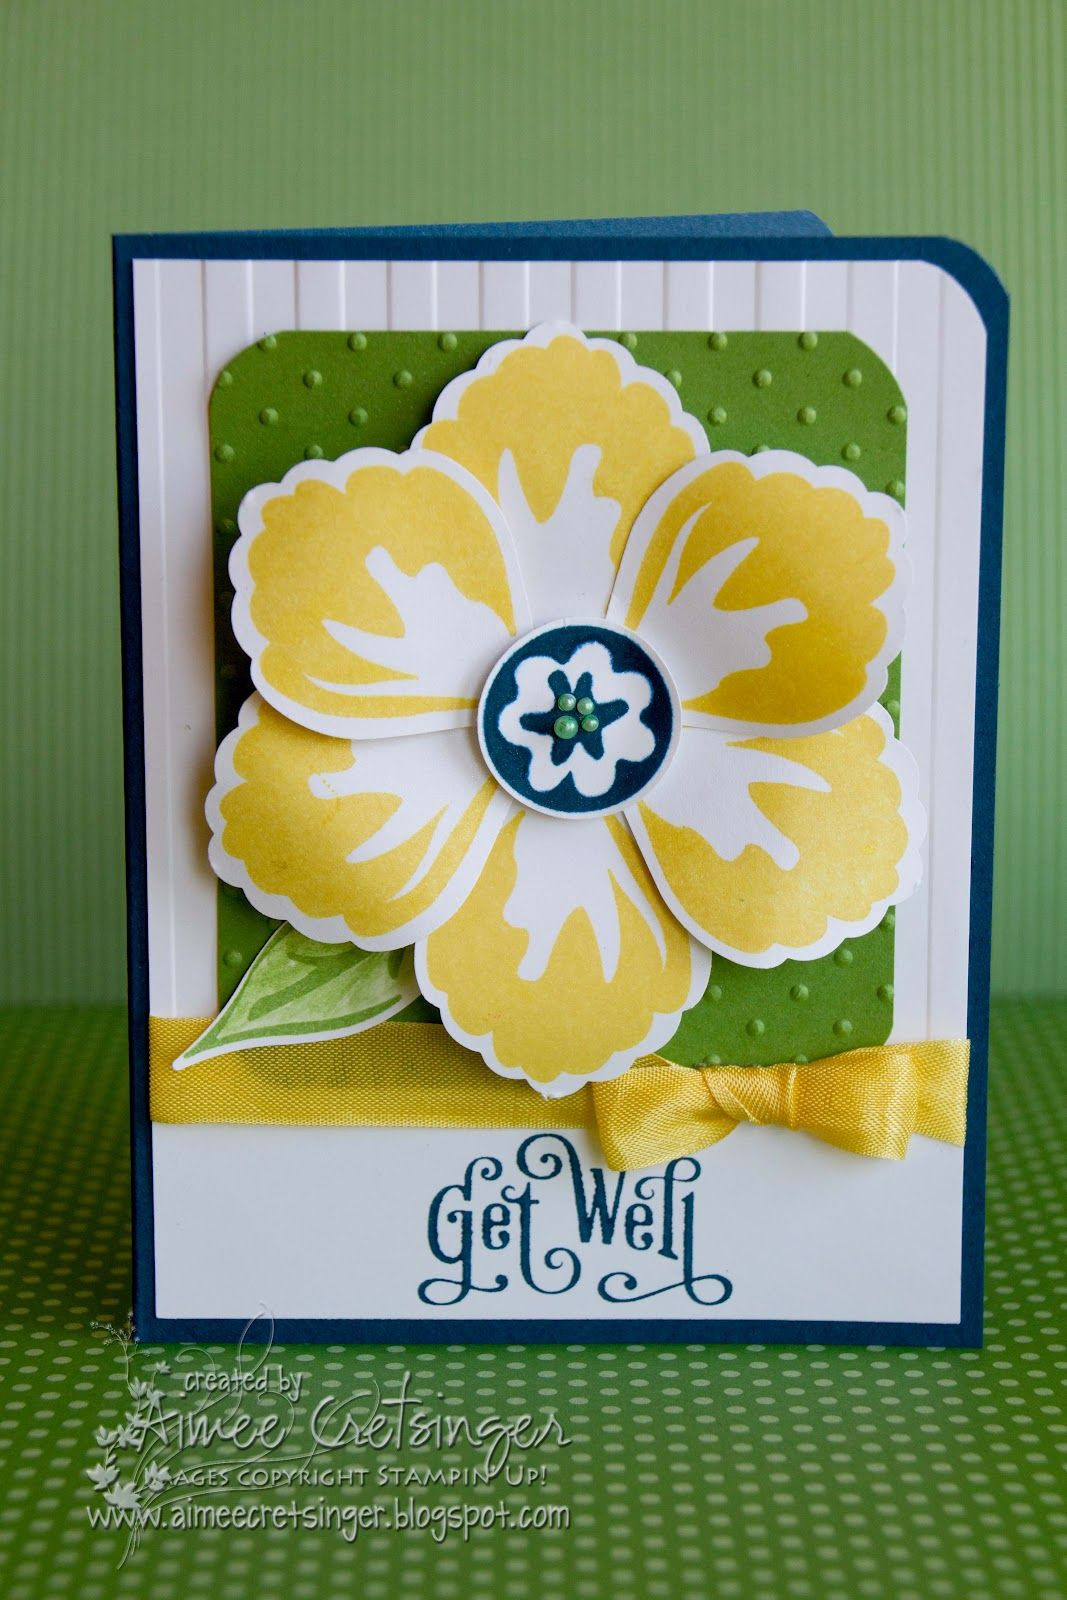 Aimee's Creations: Get Well Blossoms